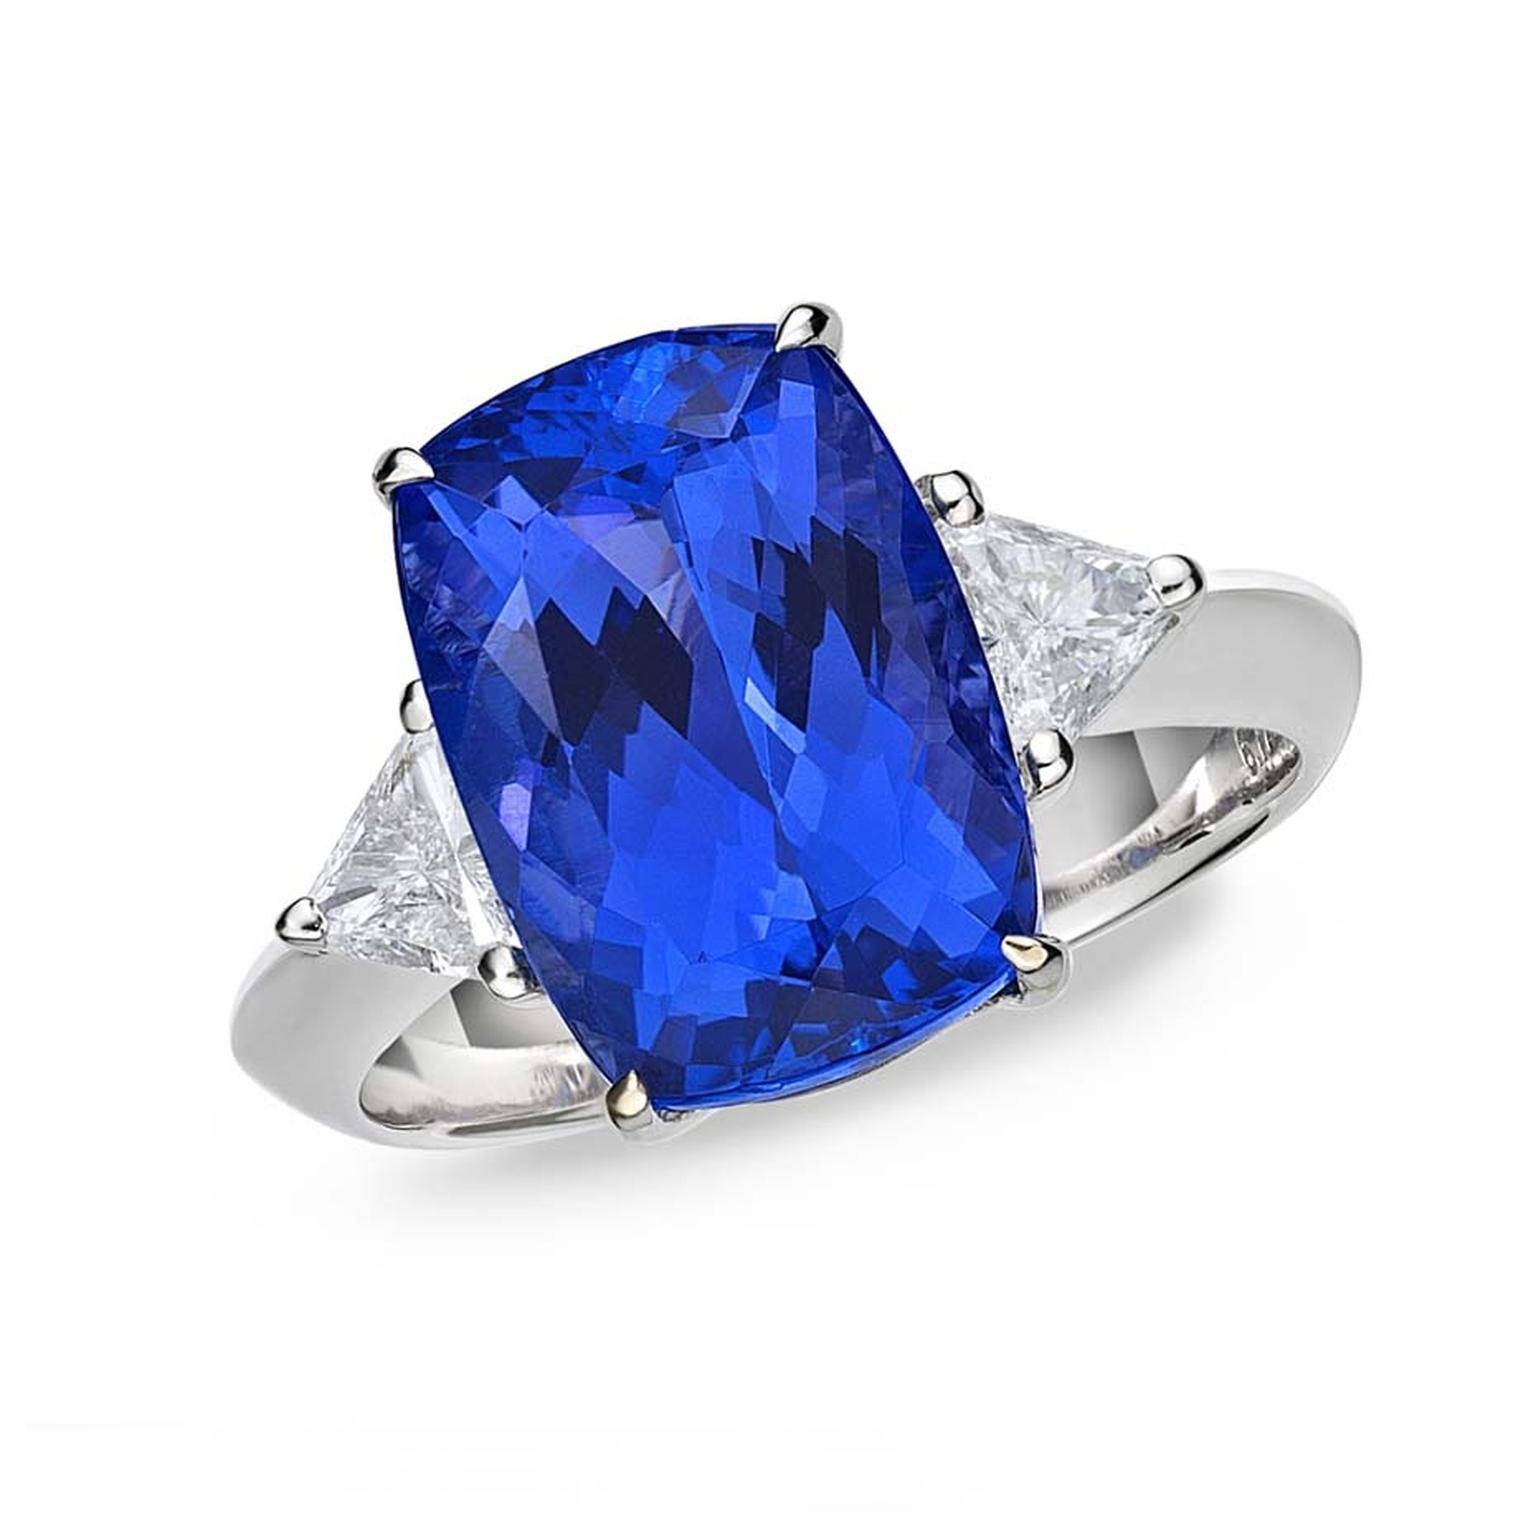 Caroline Cushion Cut Tanzanite Ring With Diamonds | Tanzaniteone Inside Tanzanite Engagement (View 7 of 15)